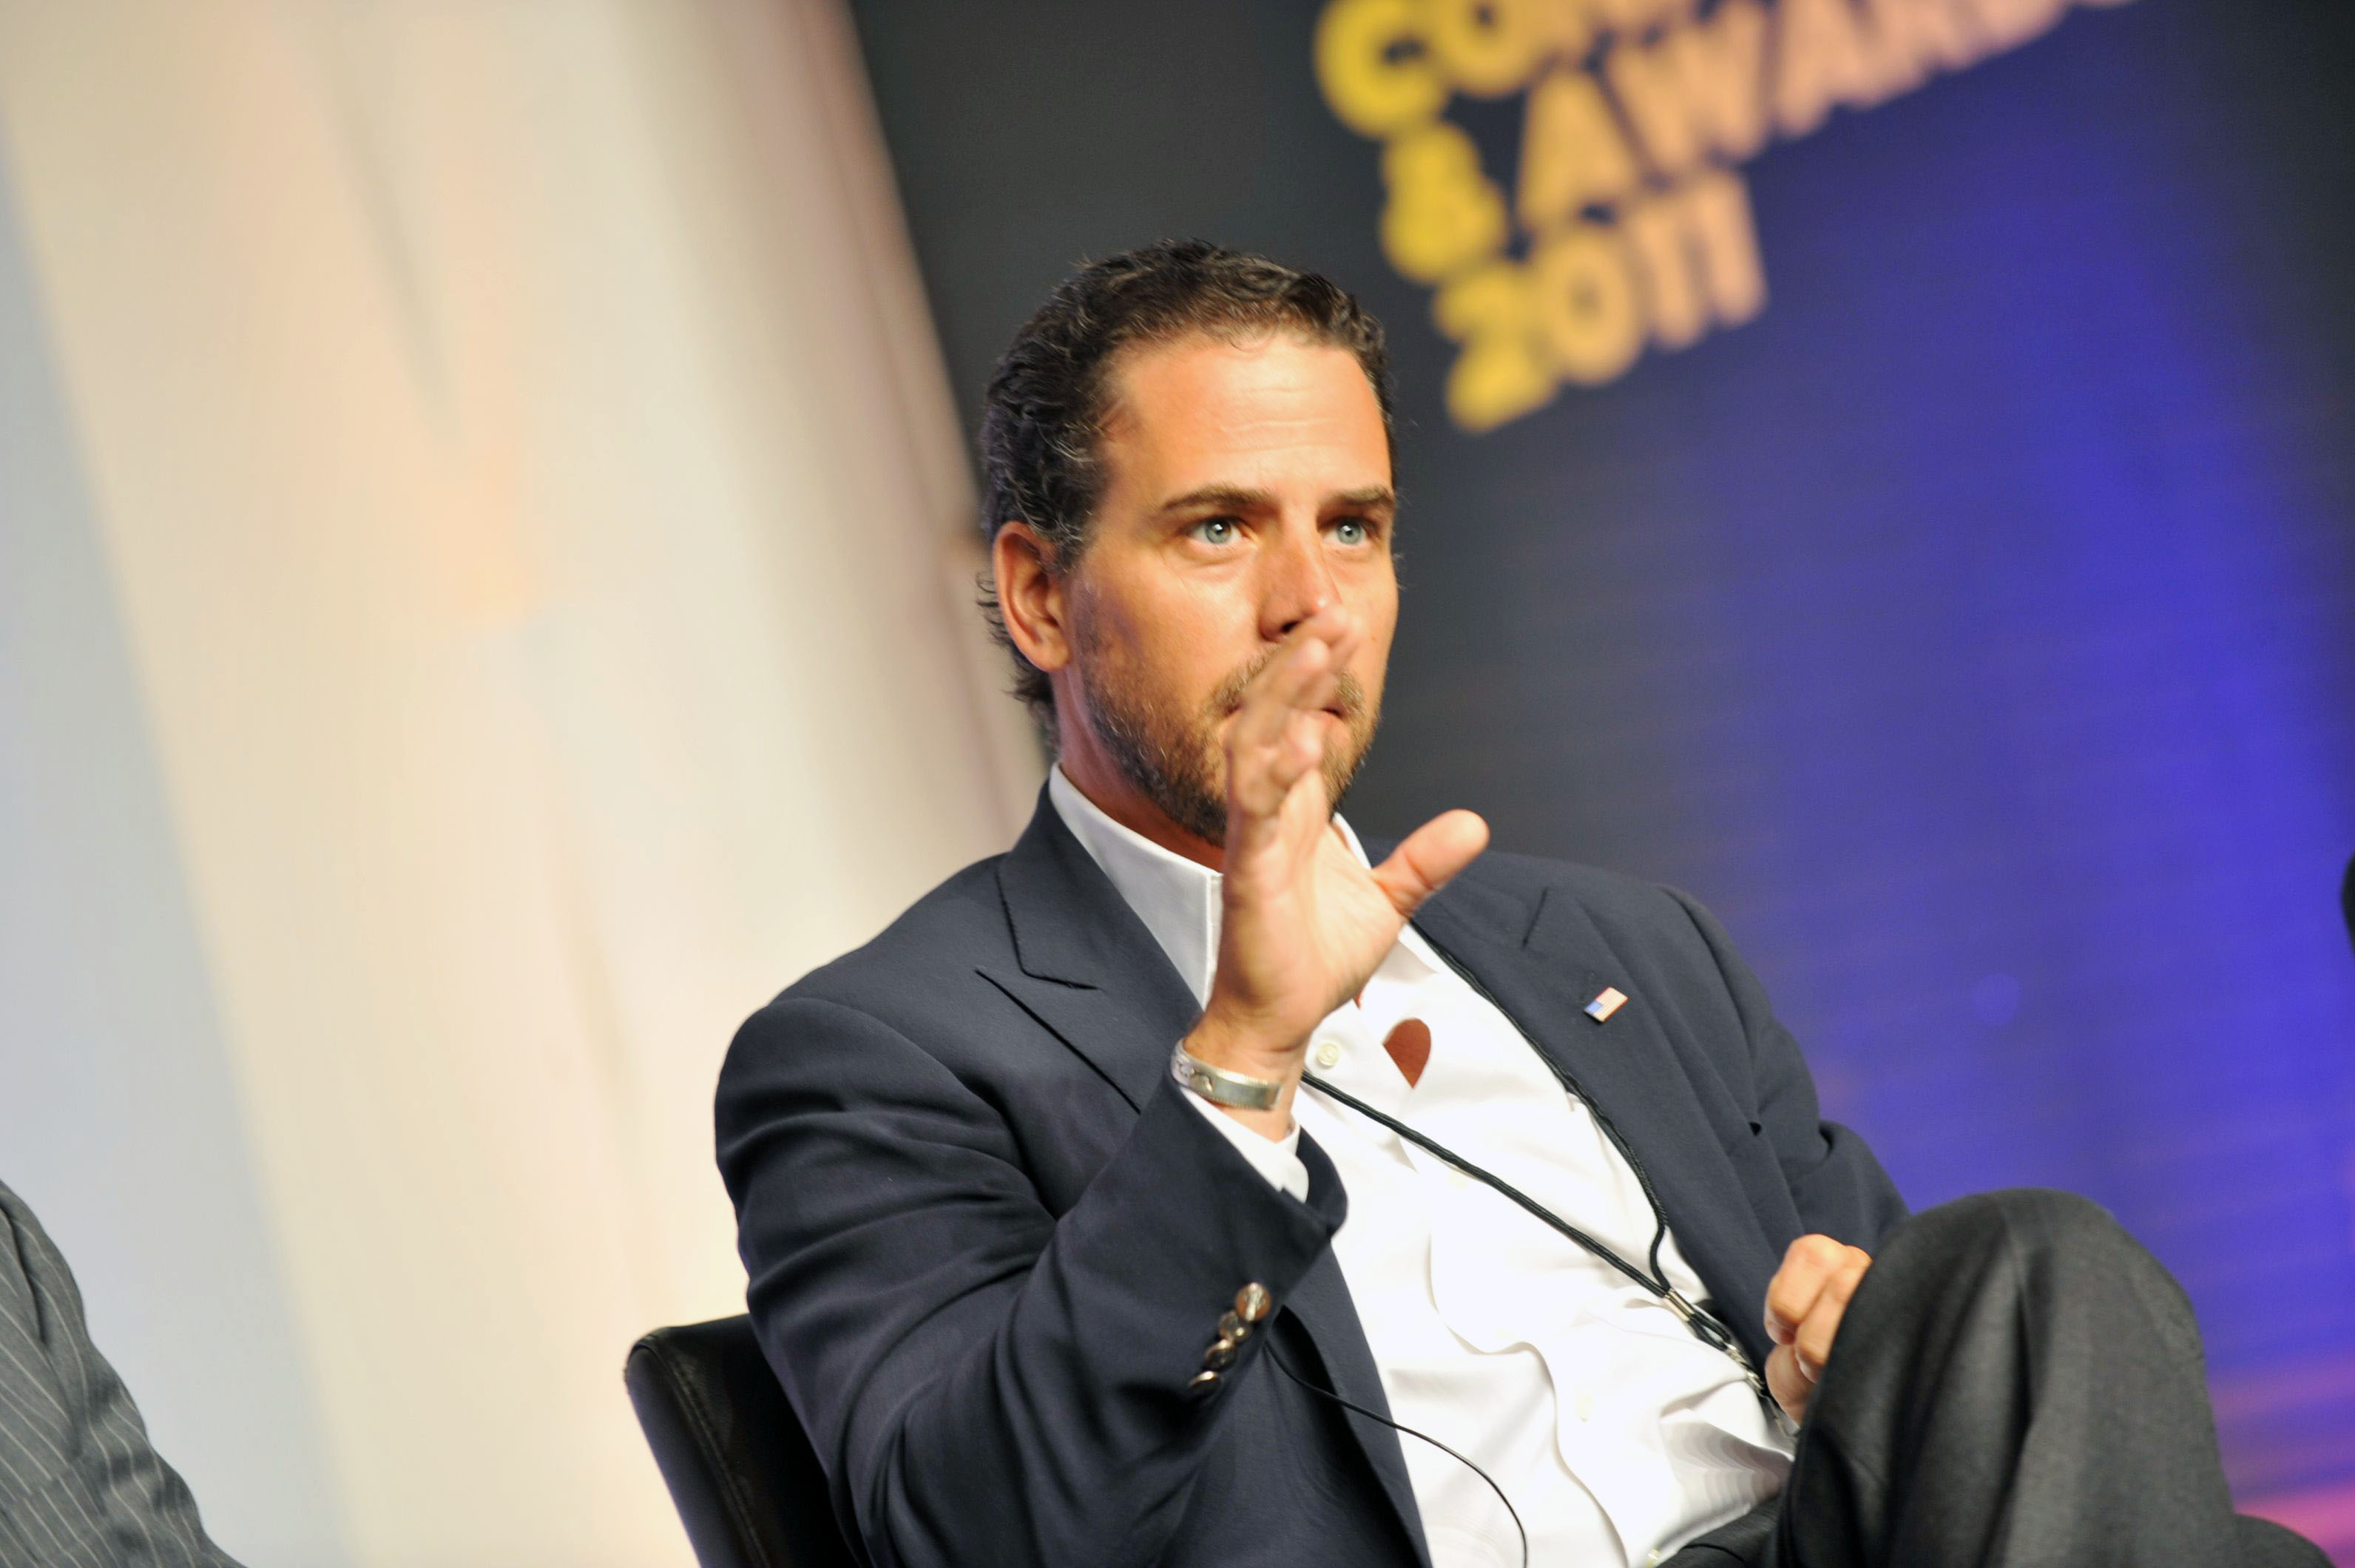 ATLANTA, GA - JULY 22: Hunter Biden attends Usher's New Look Foundation - World Leadership Conference & Awards 2011 - Day 3 at Cobb Energy Center on July 22, 2011 in Atlanta, Georgia. (Photo by Moses Robinson/Getty Images for Usher's New Look Foundation)